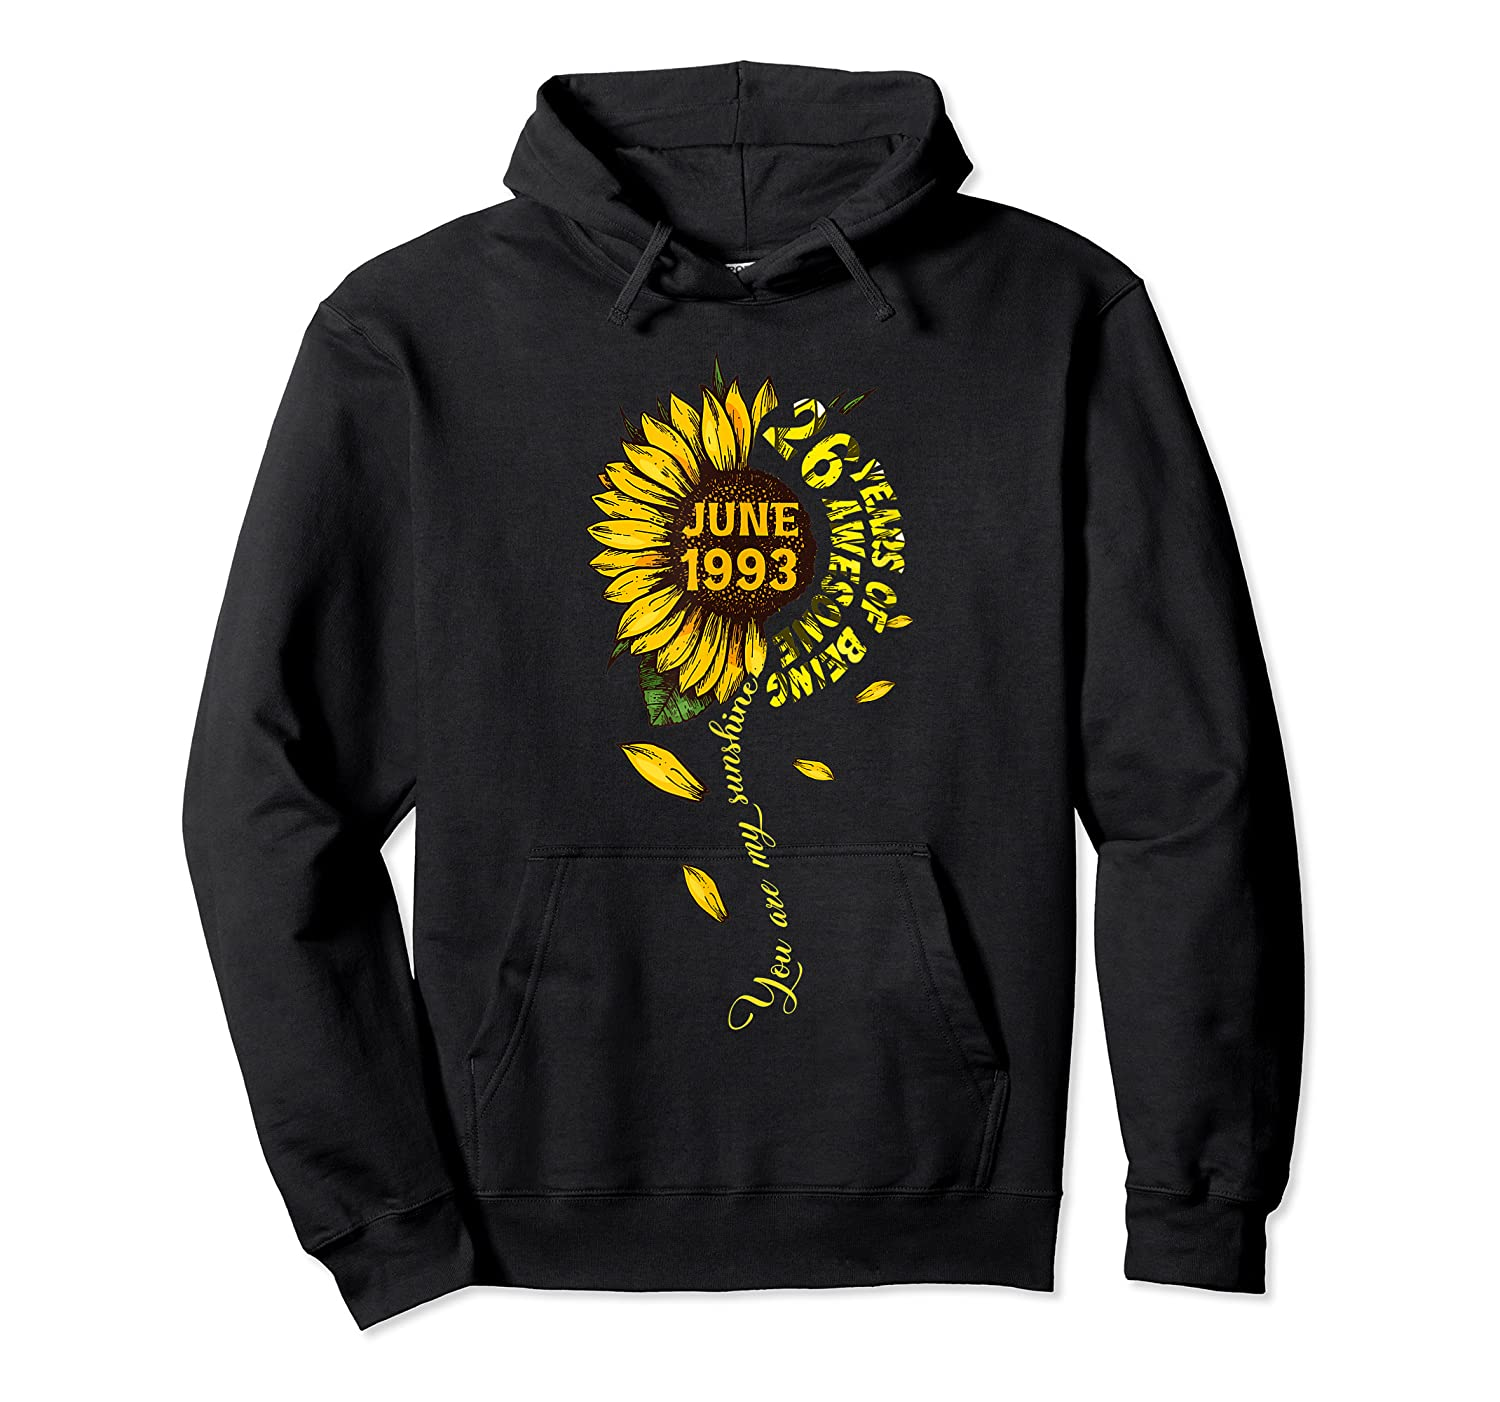 June 1993 26 Years Of Being Awesome Mix Sunflower Shirts Unisex Pullover Hoodie